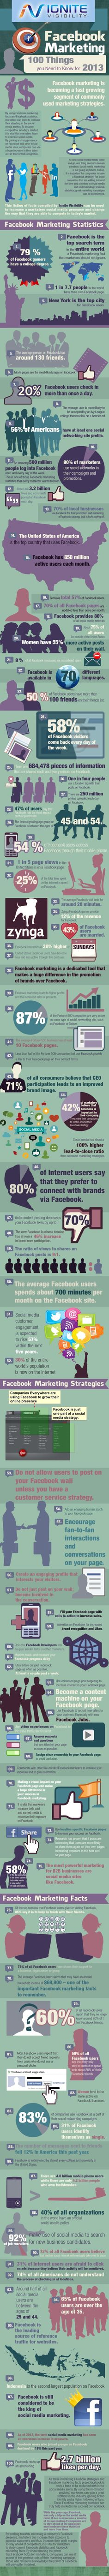 Facebook Marketing: 100 Things you need to know